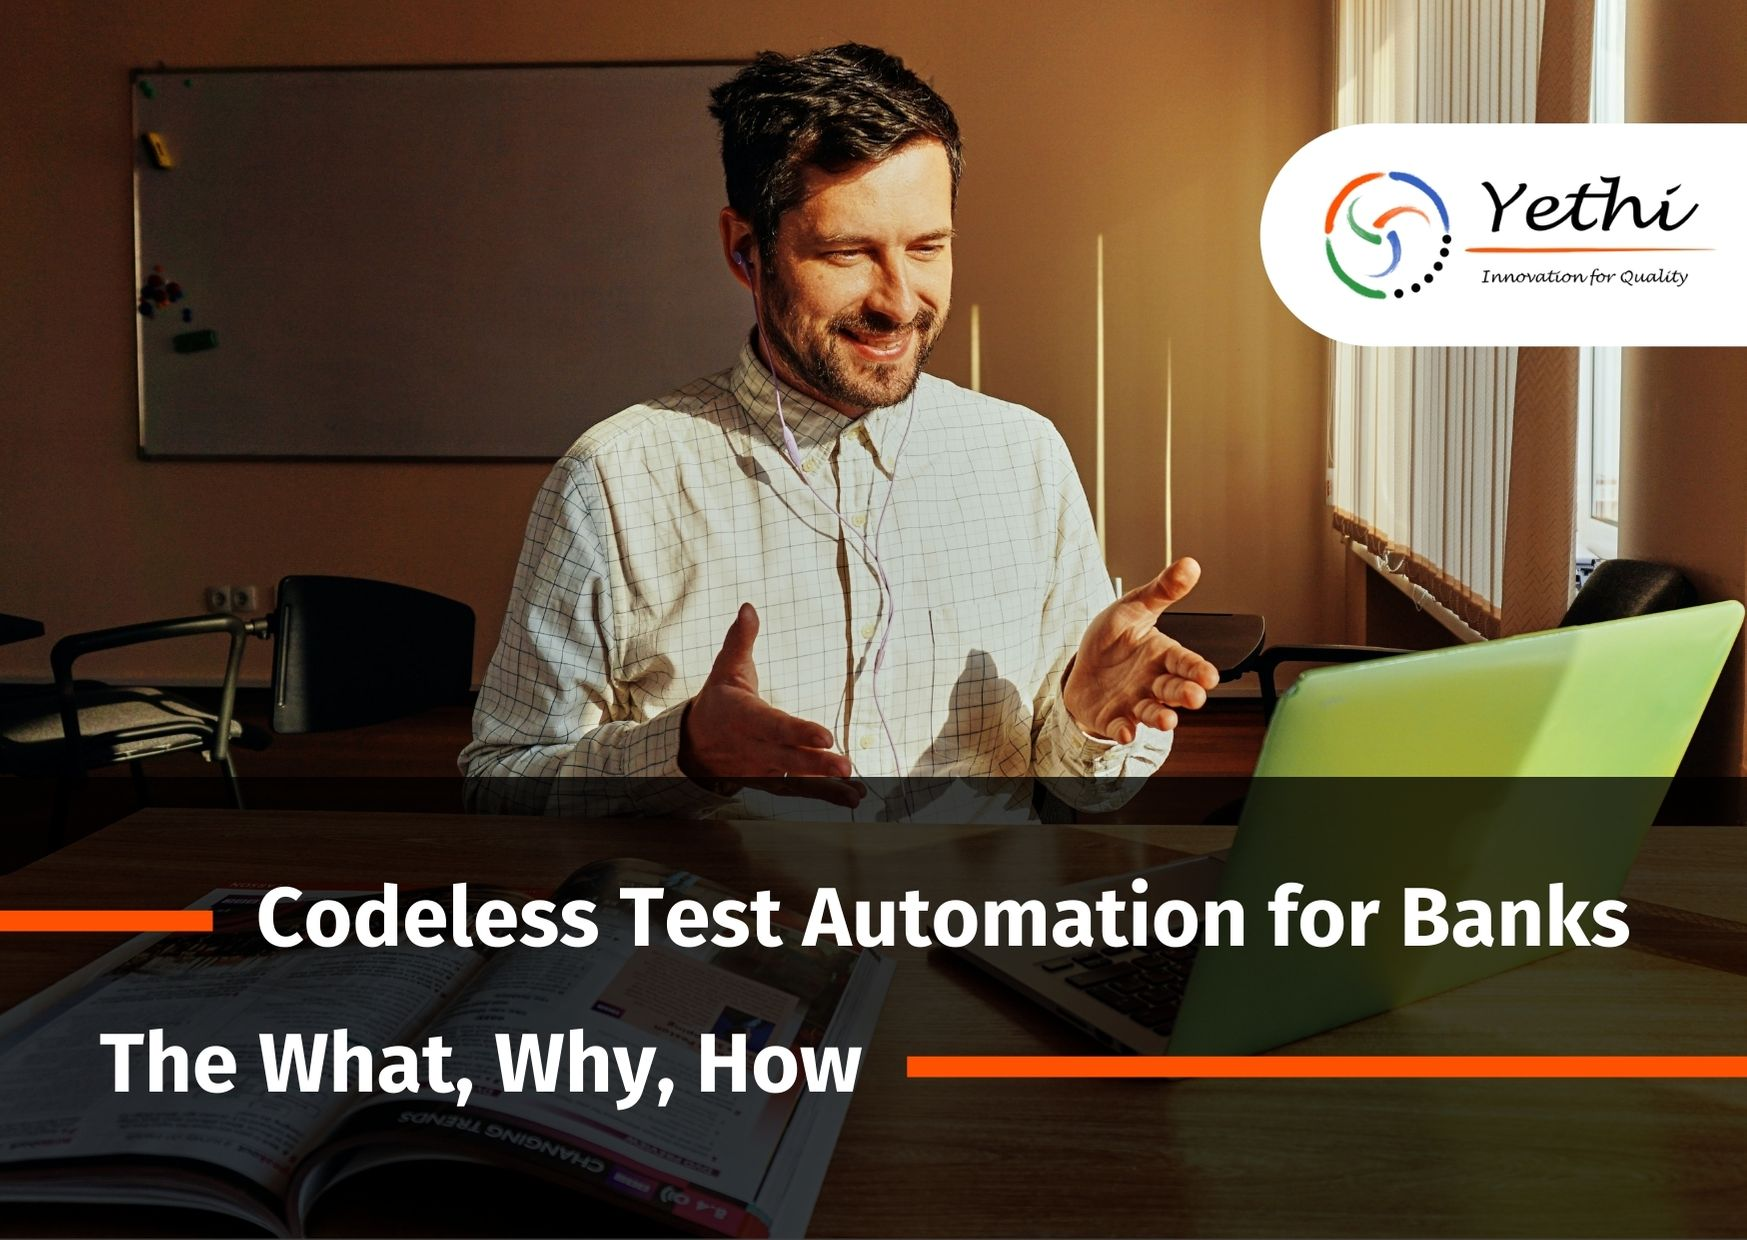 Codeless test automation for banks